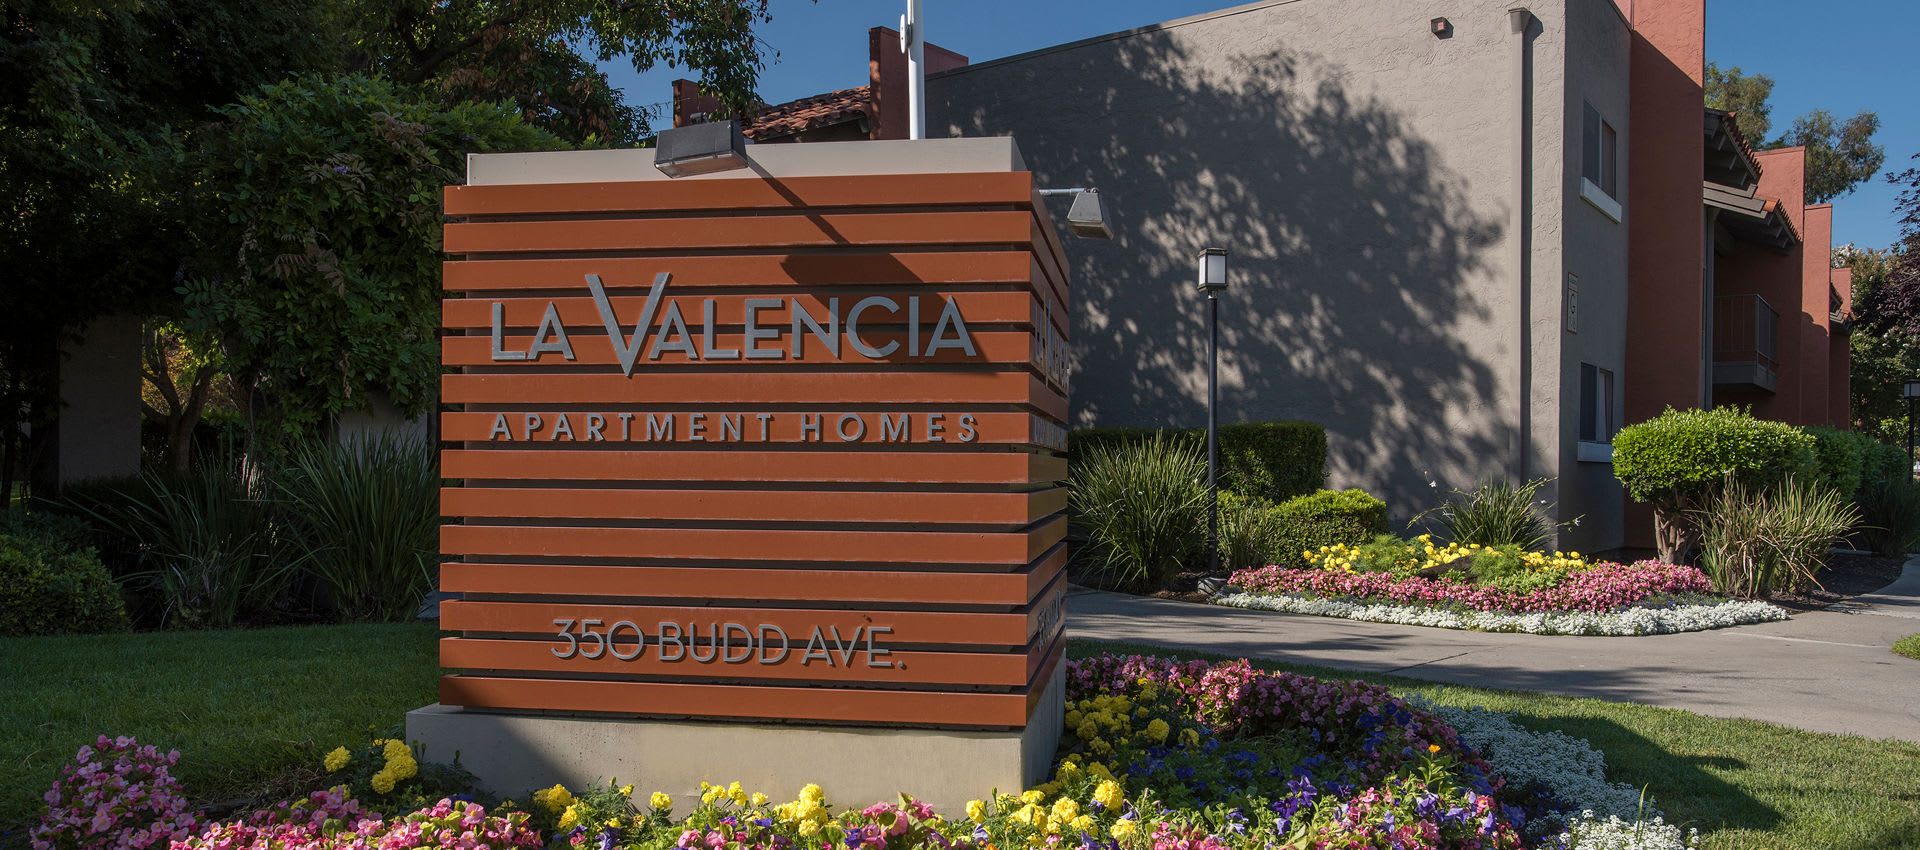 Housing sign at La Valencia Apartment Homes in Campbell, California